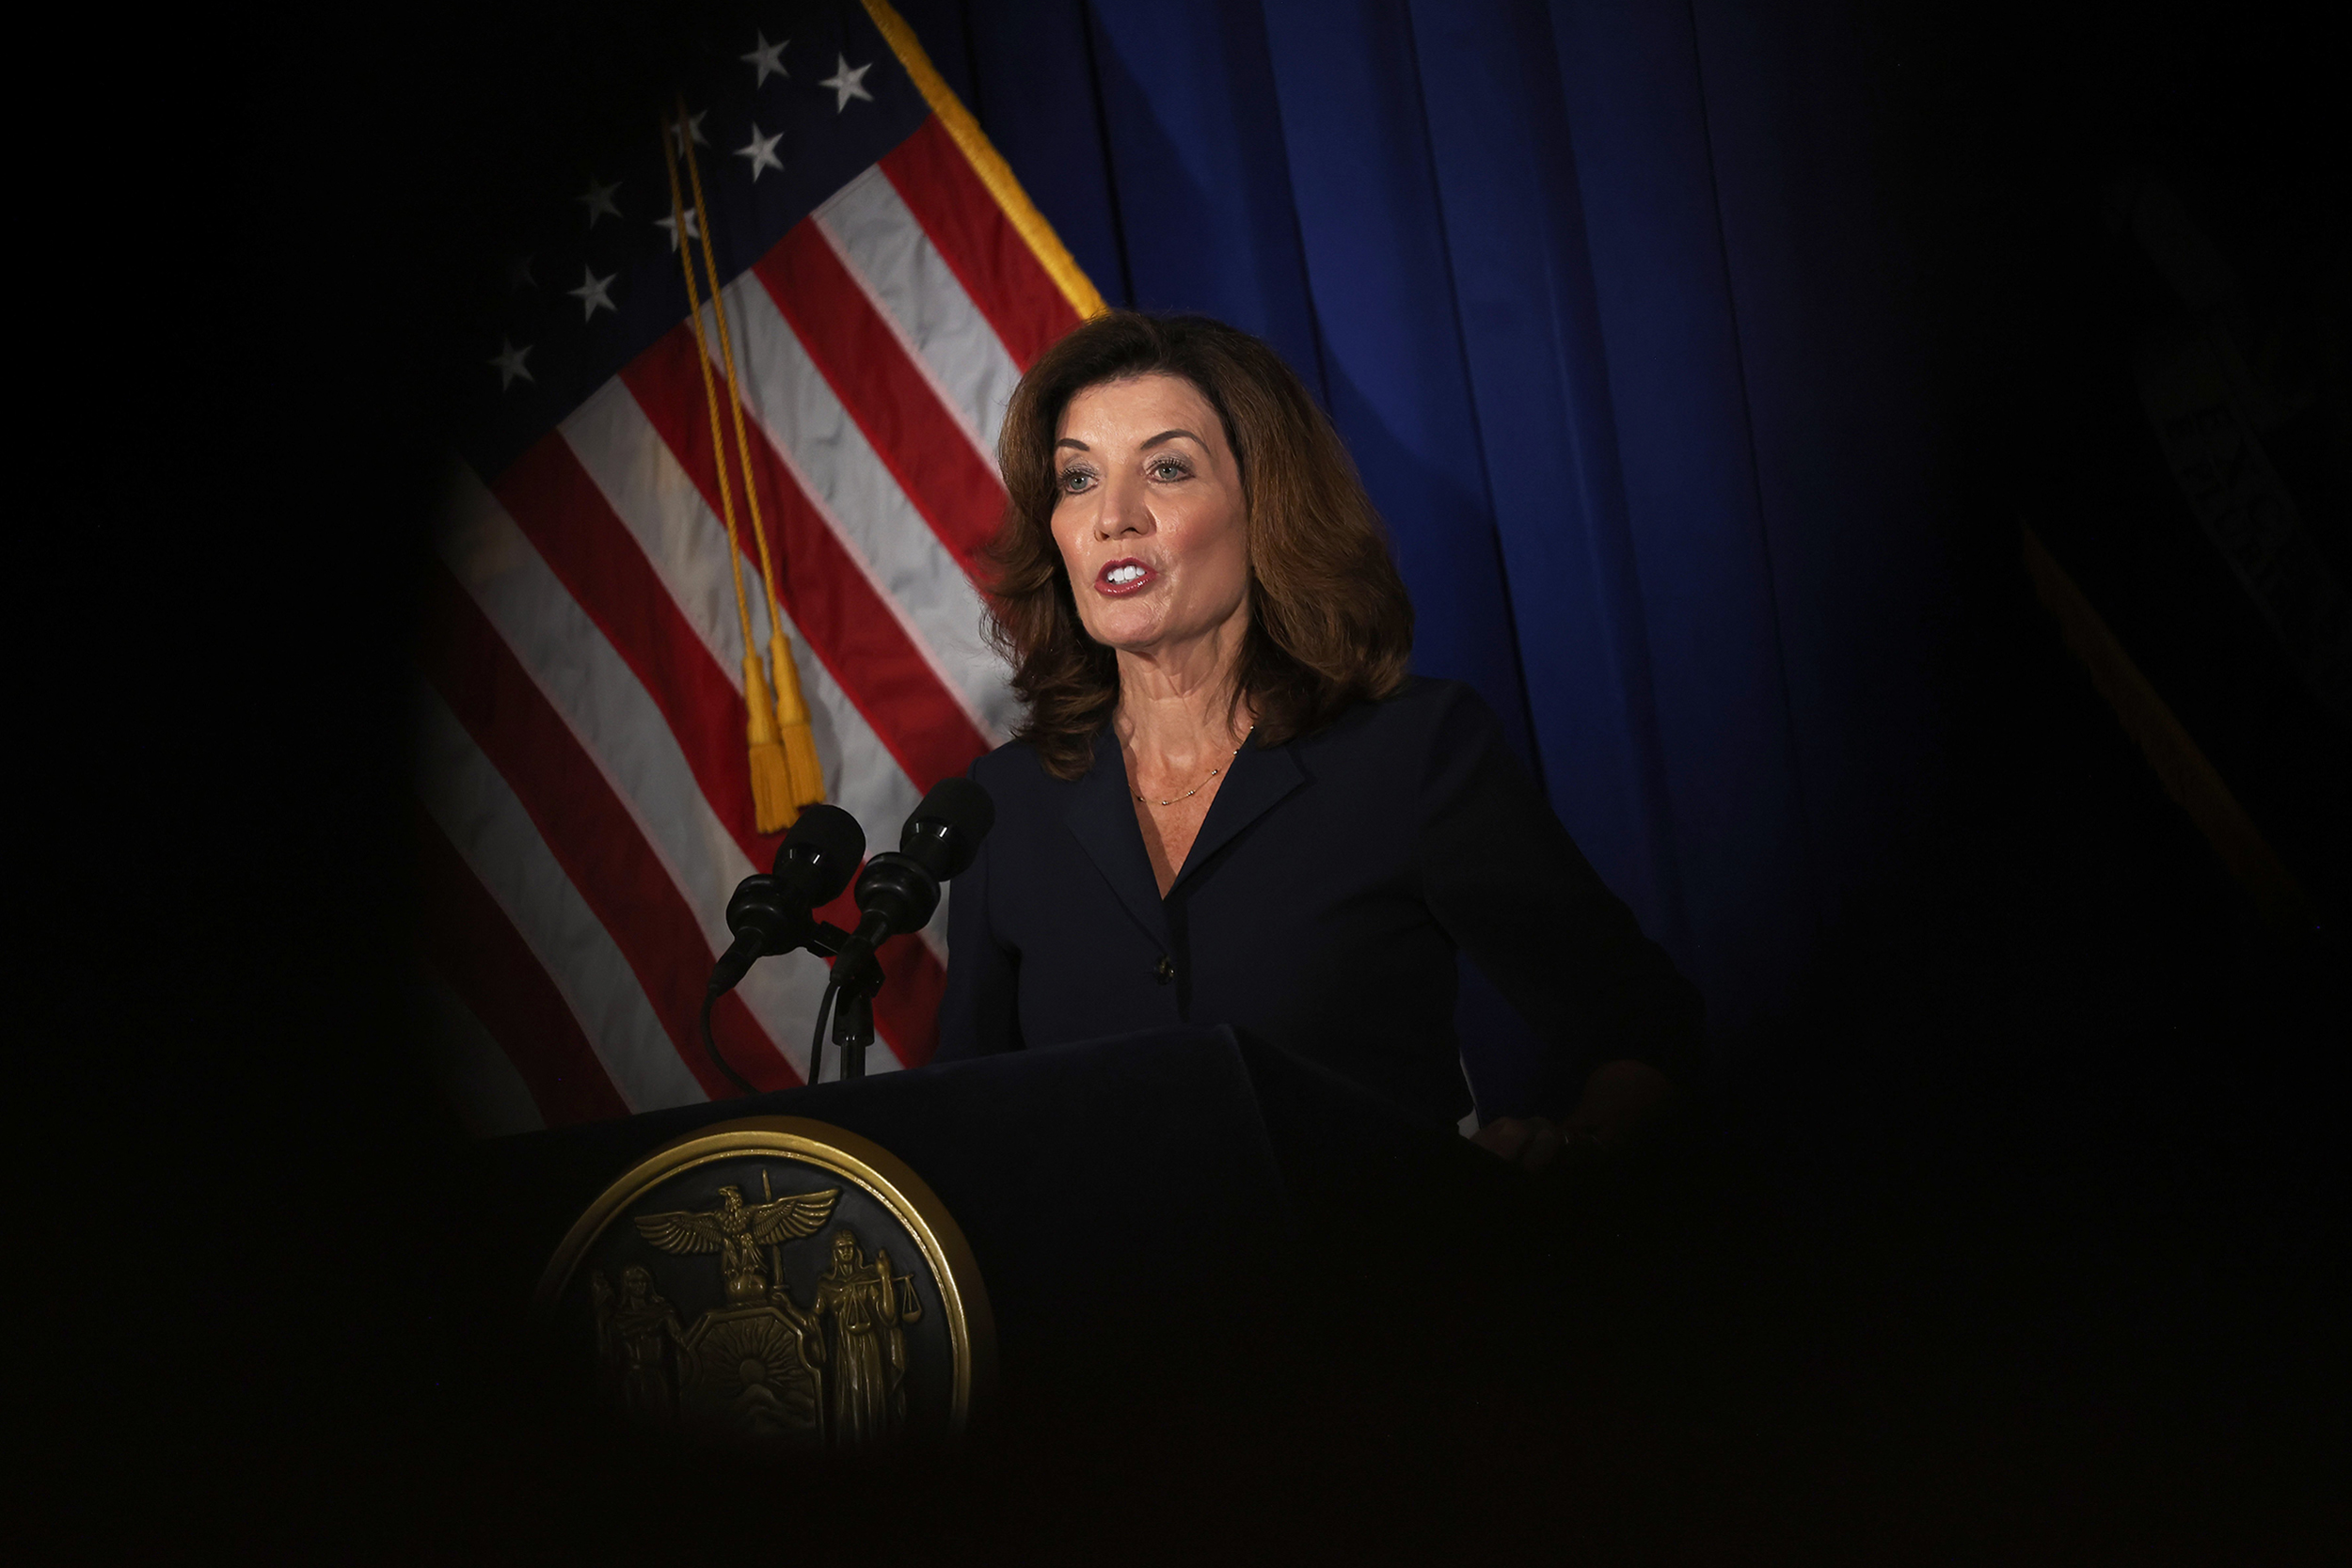 Hochul calls allegations against Cuomo 'sickening,' vows 'a very different environment'